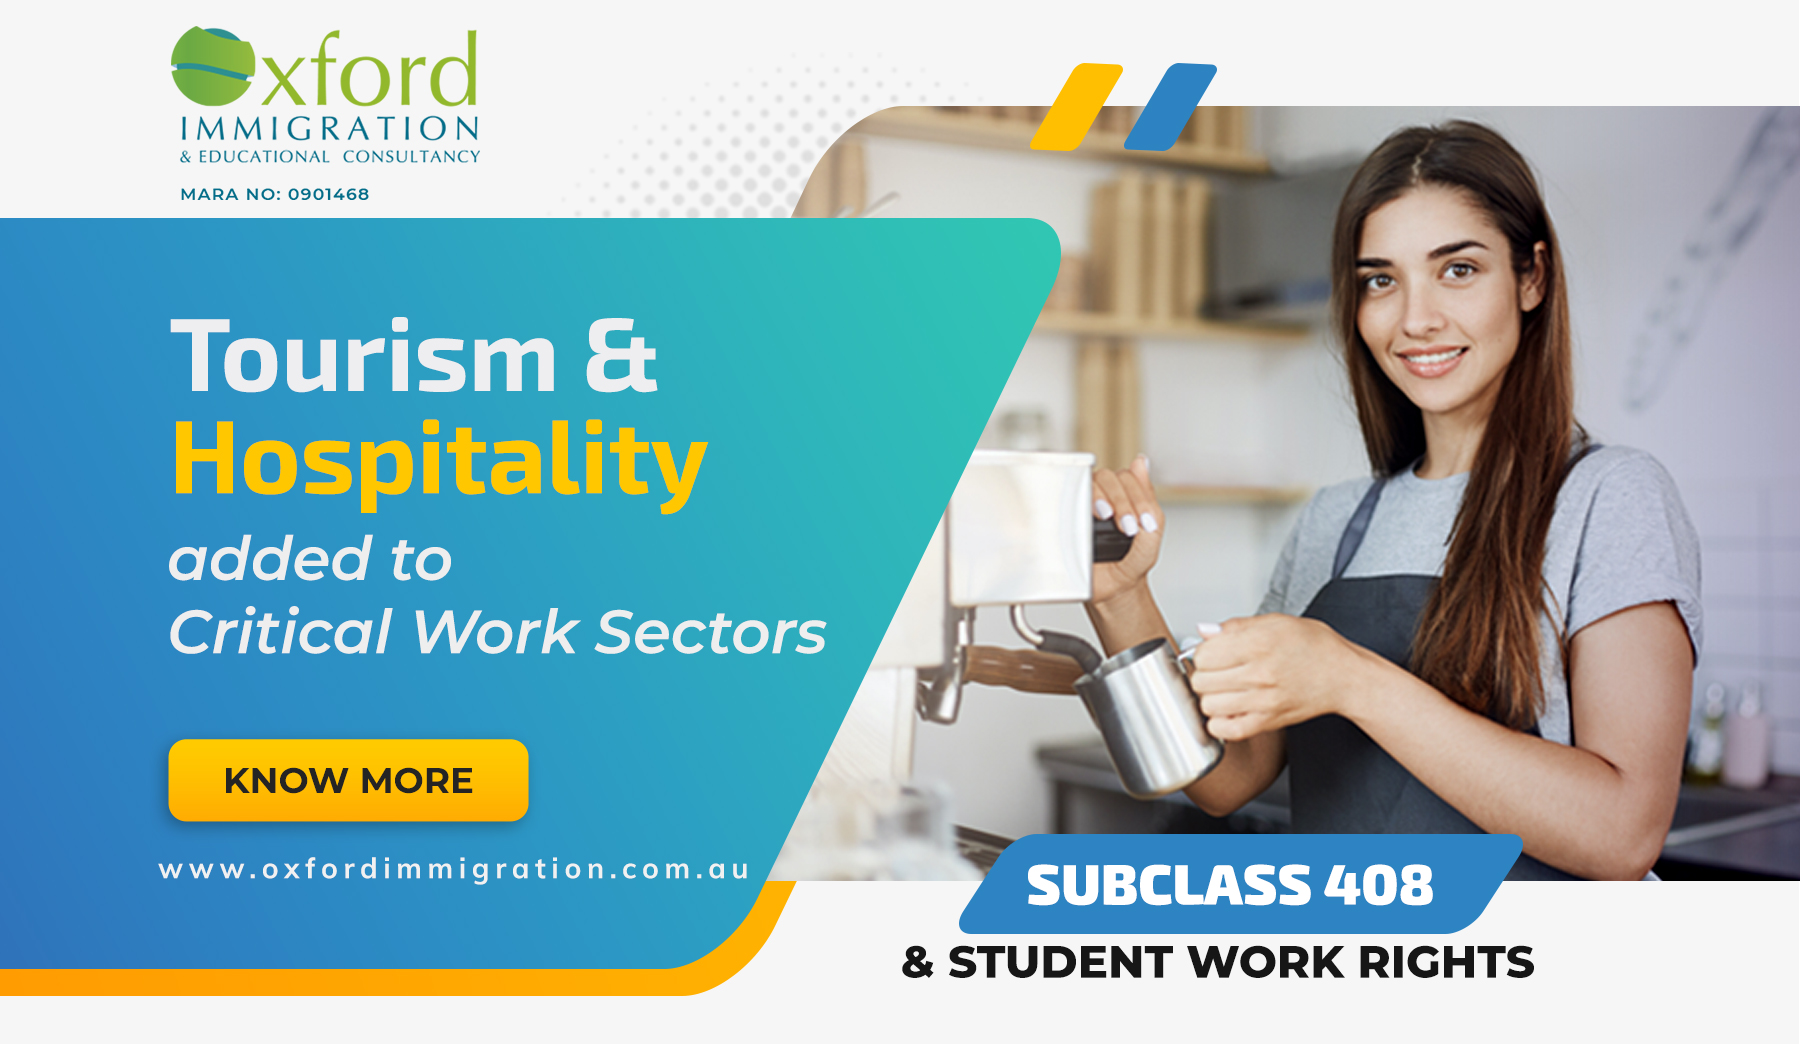 Tourism and Hospitality in Australia added to critical work sectors